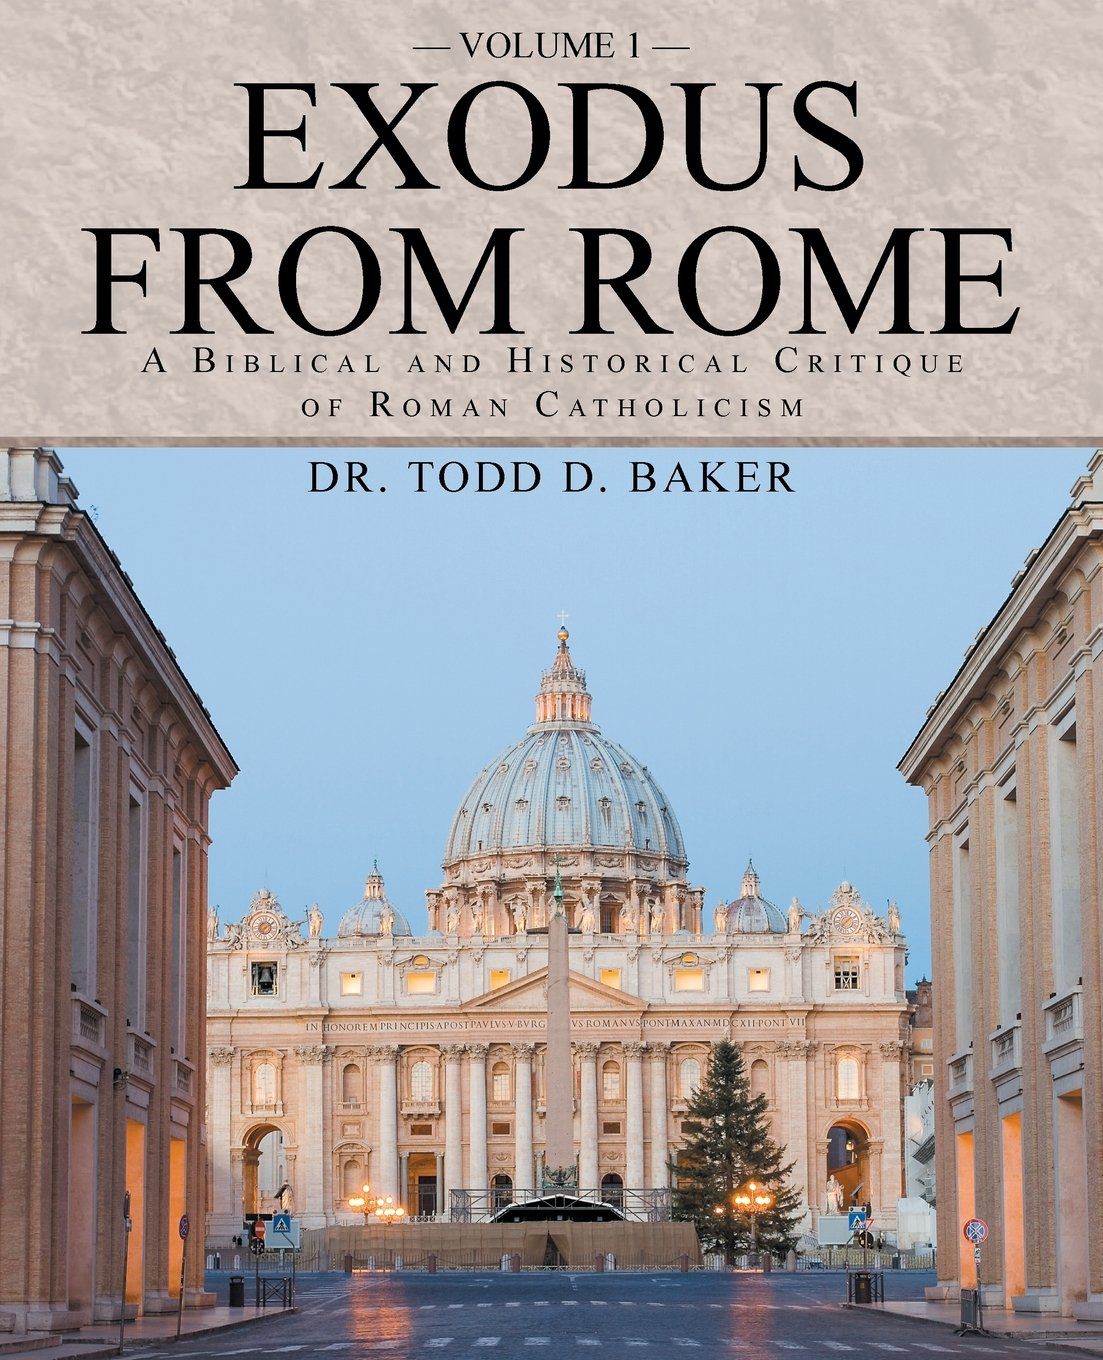 Download Exodus From Rome Volume 1: A Biblical and Historical Critique of Roman Catholicism PDF